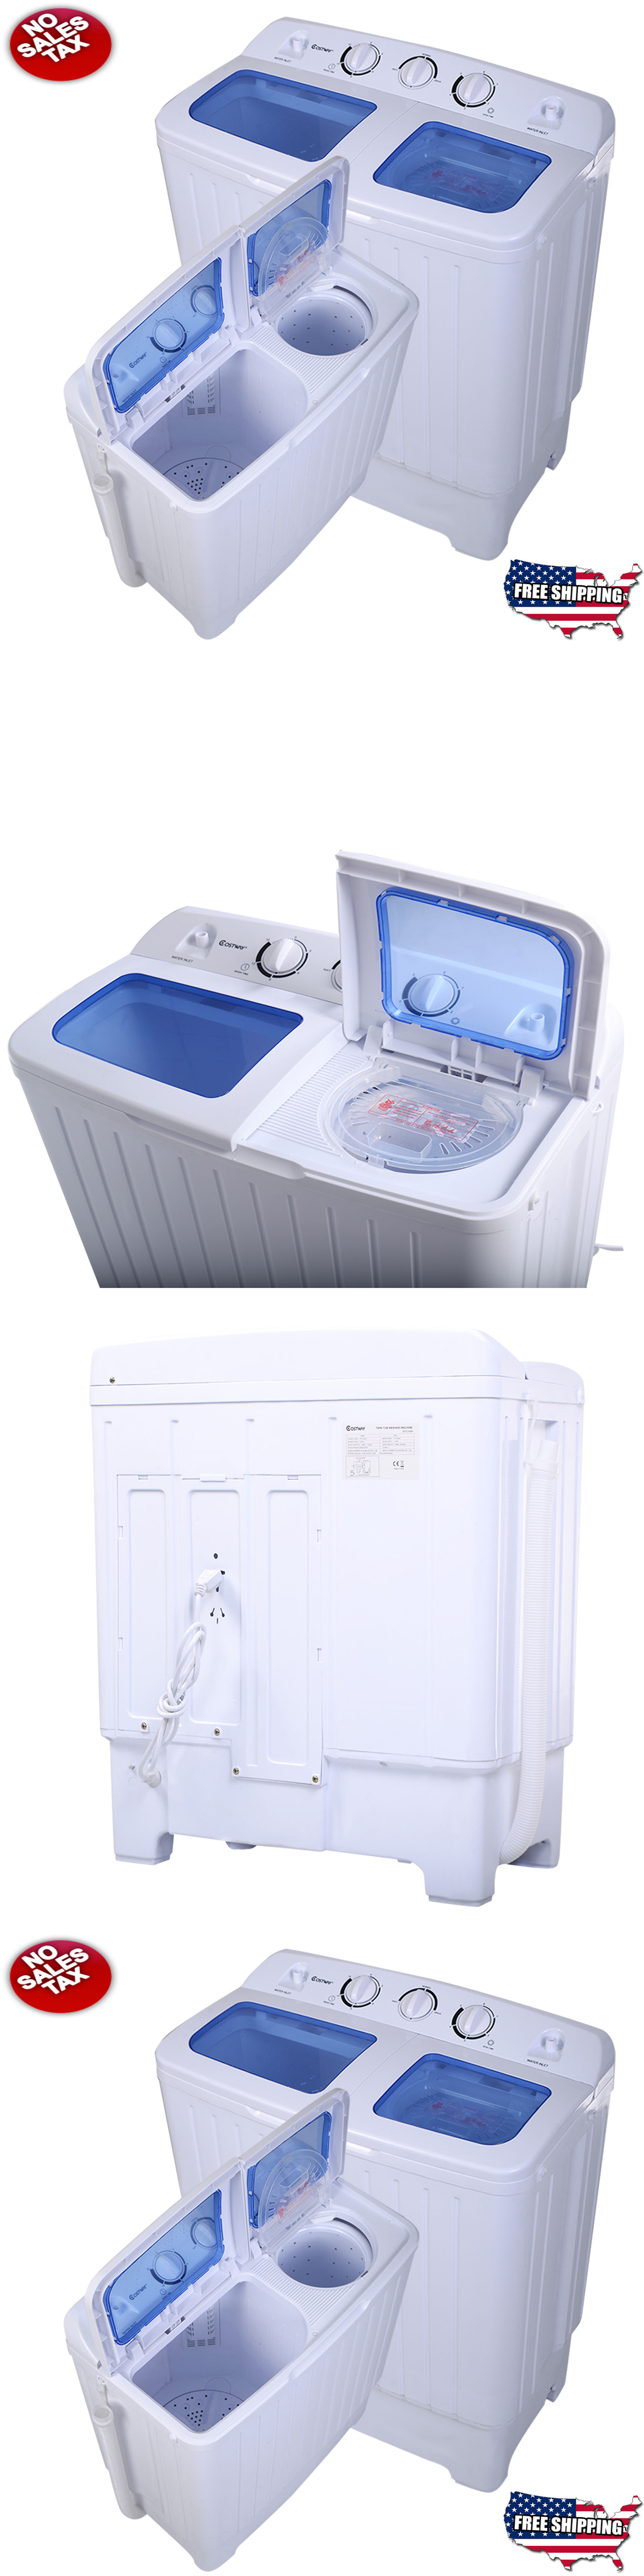 Washer And Dryer Sets 71257: All In One Portable Washing Machine Cleaner  Dryer Apartment Washer